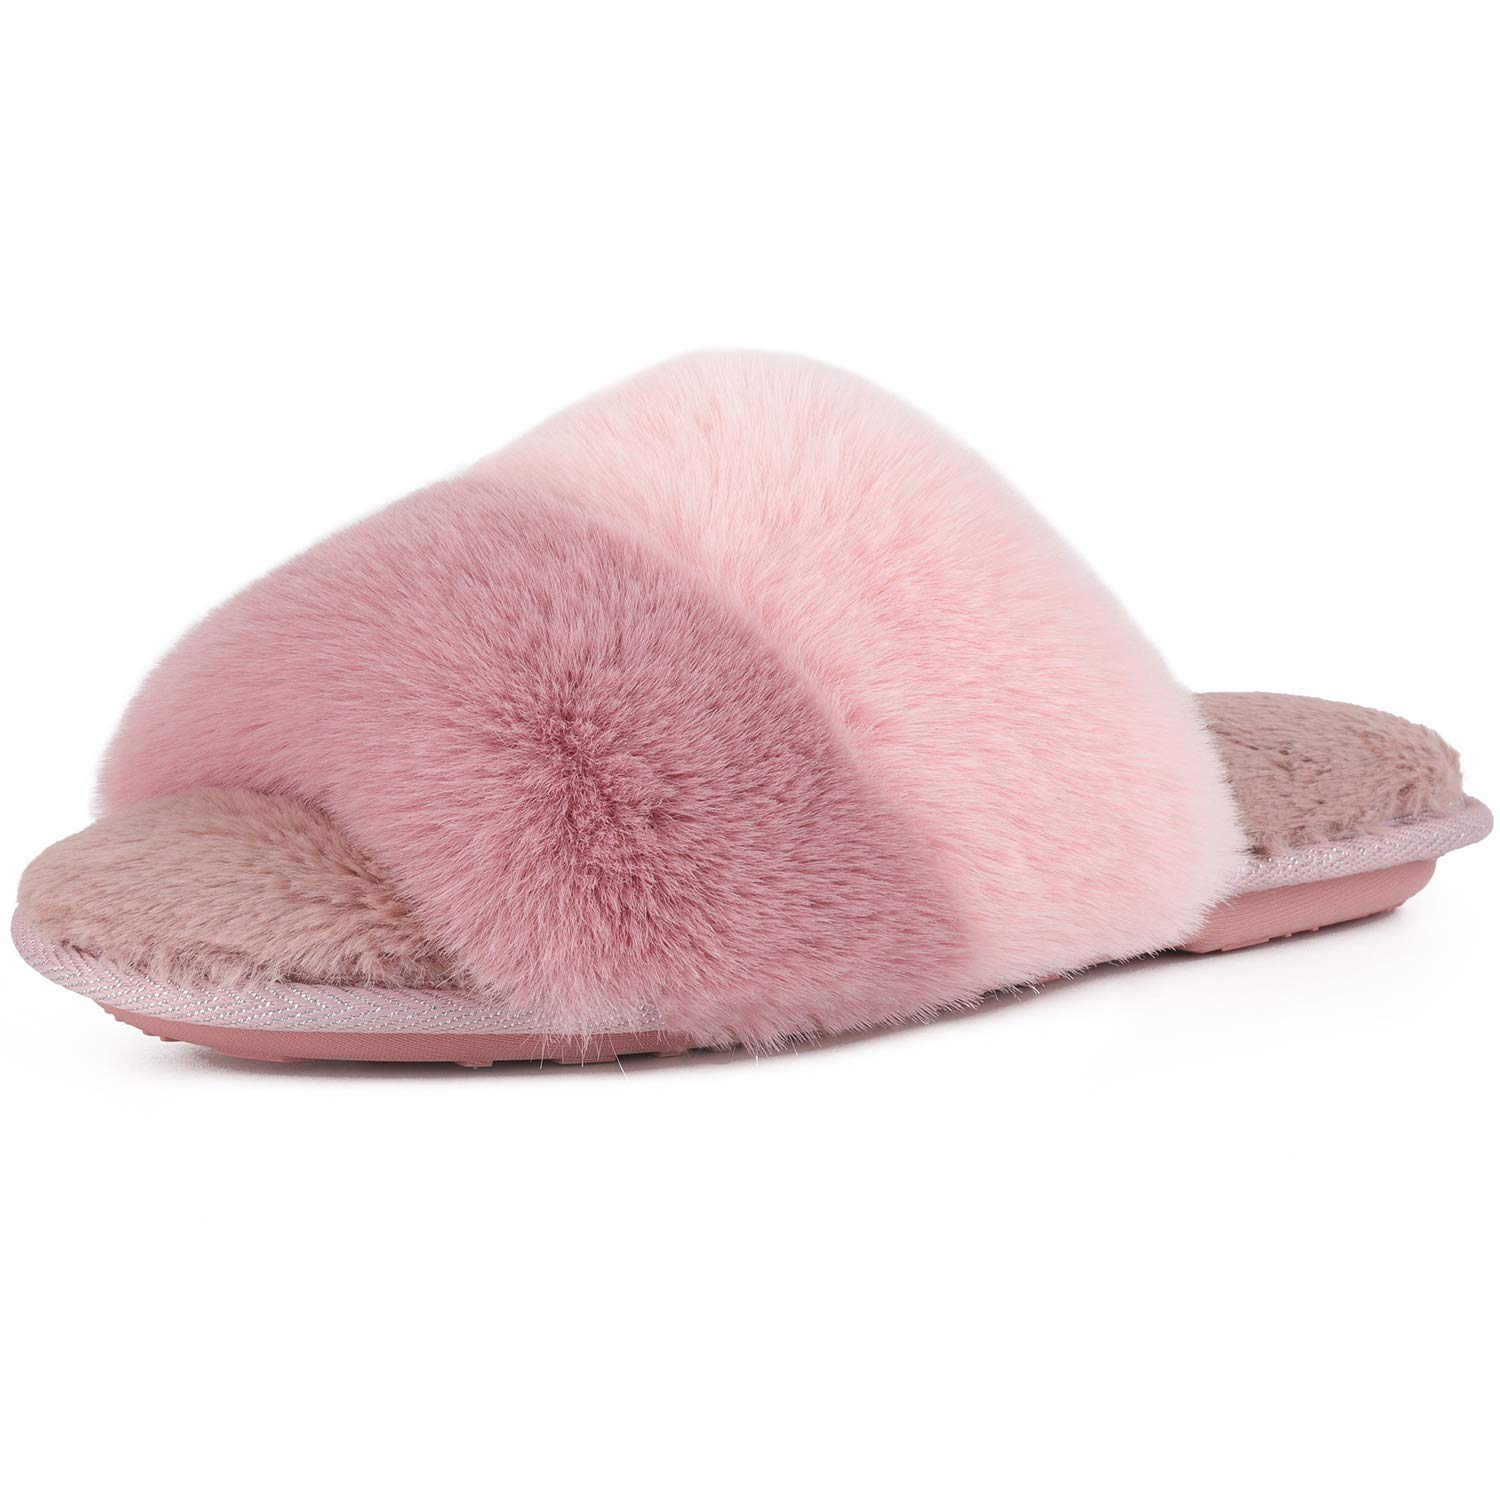 Image of Cozy Two Tone Gradient Fuzzy Slippers for Women